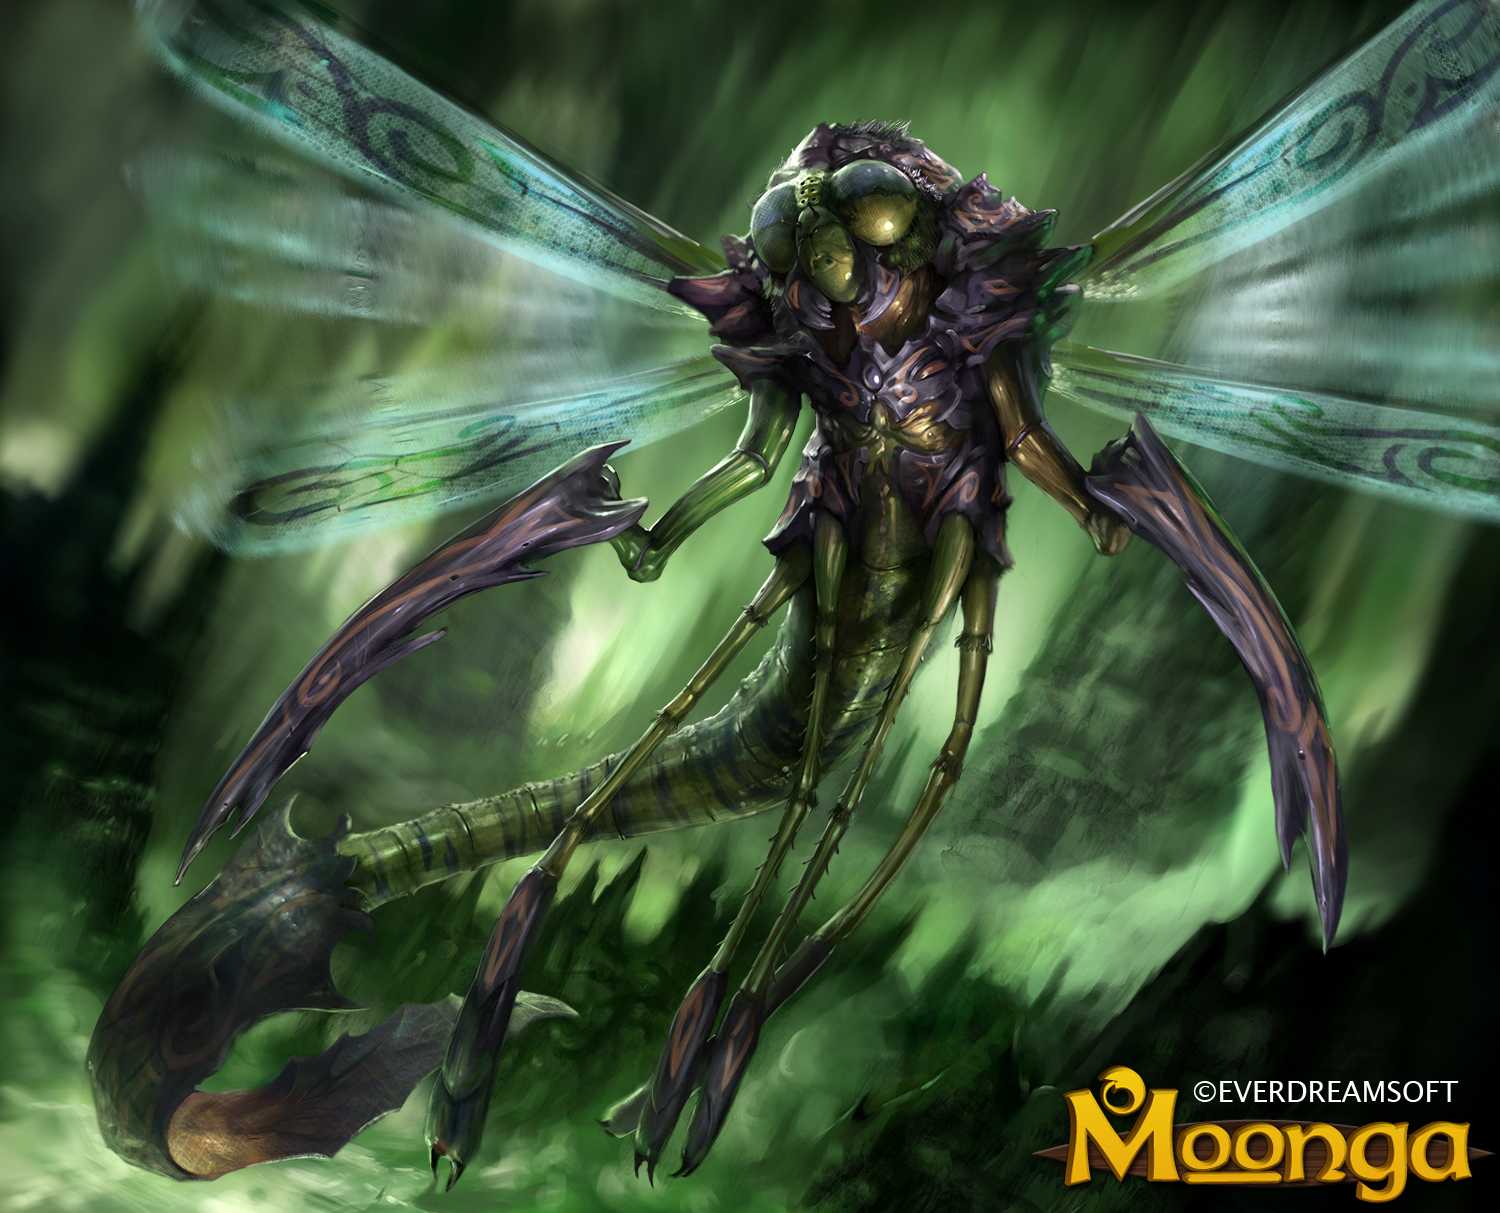 Giant dragonfly - photo#13